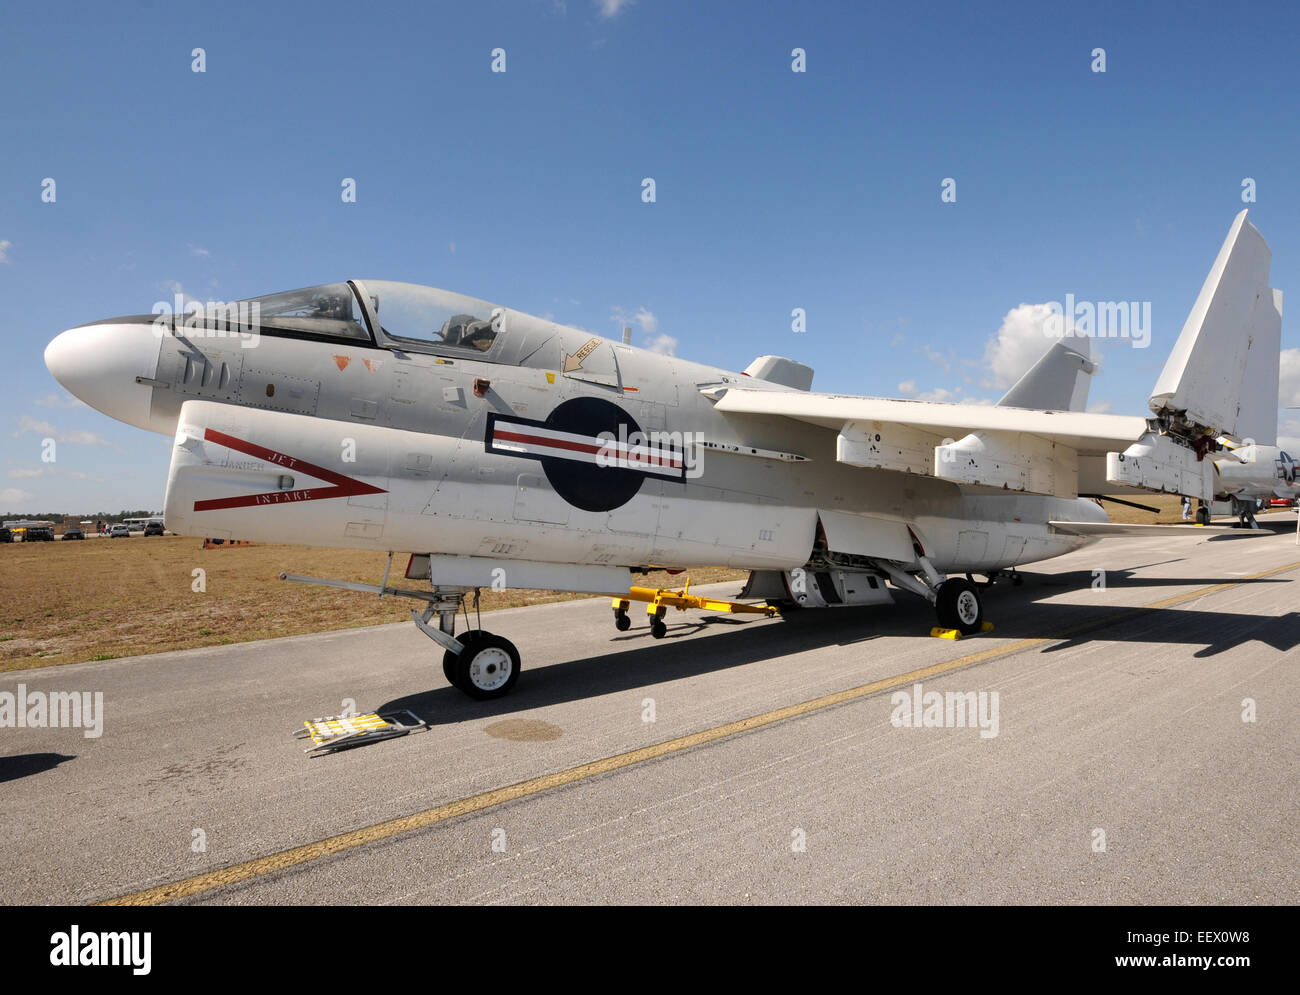 US Navy jet fighter parked on a remote airfield A-7 Stock Photo